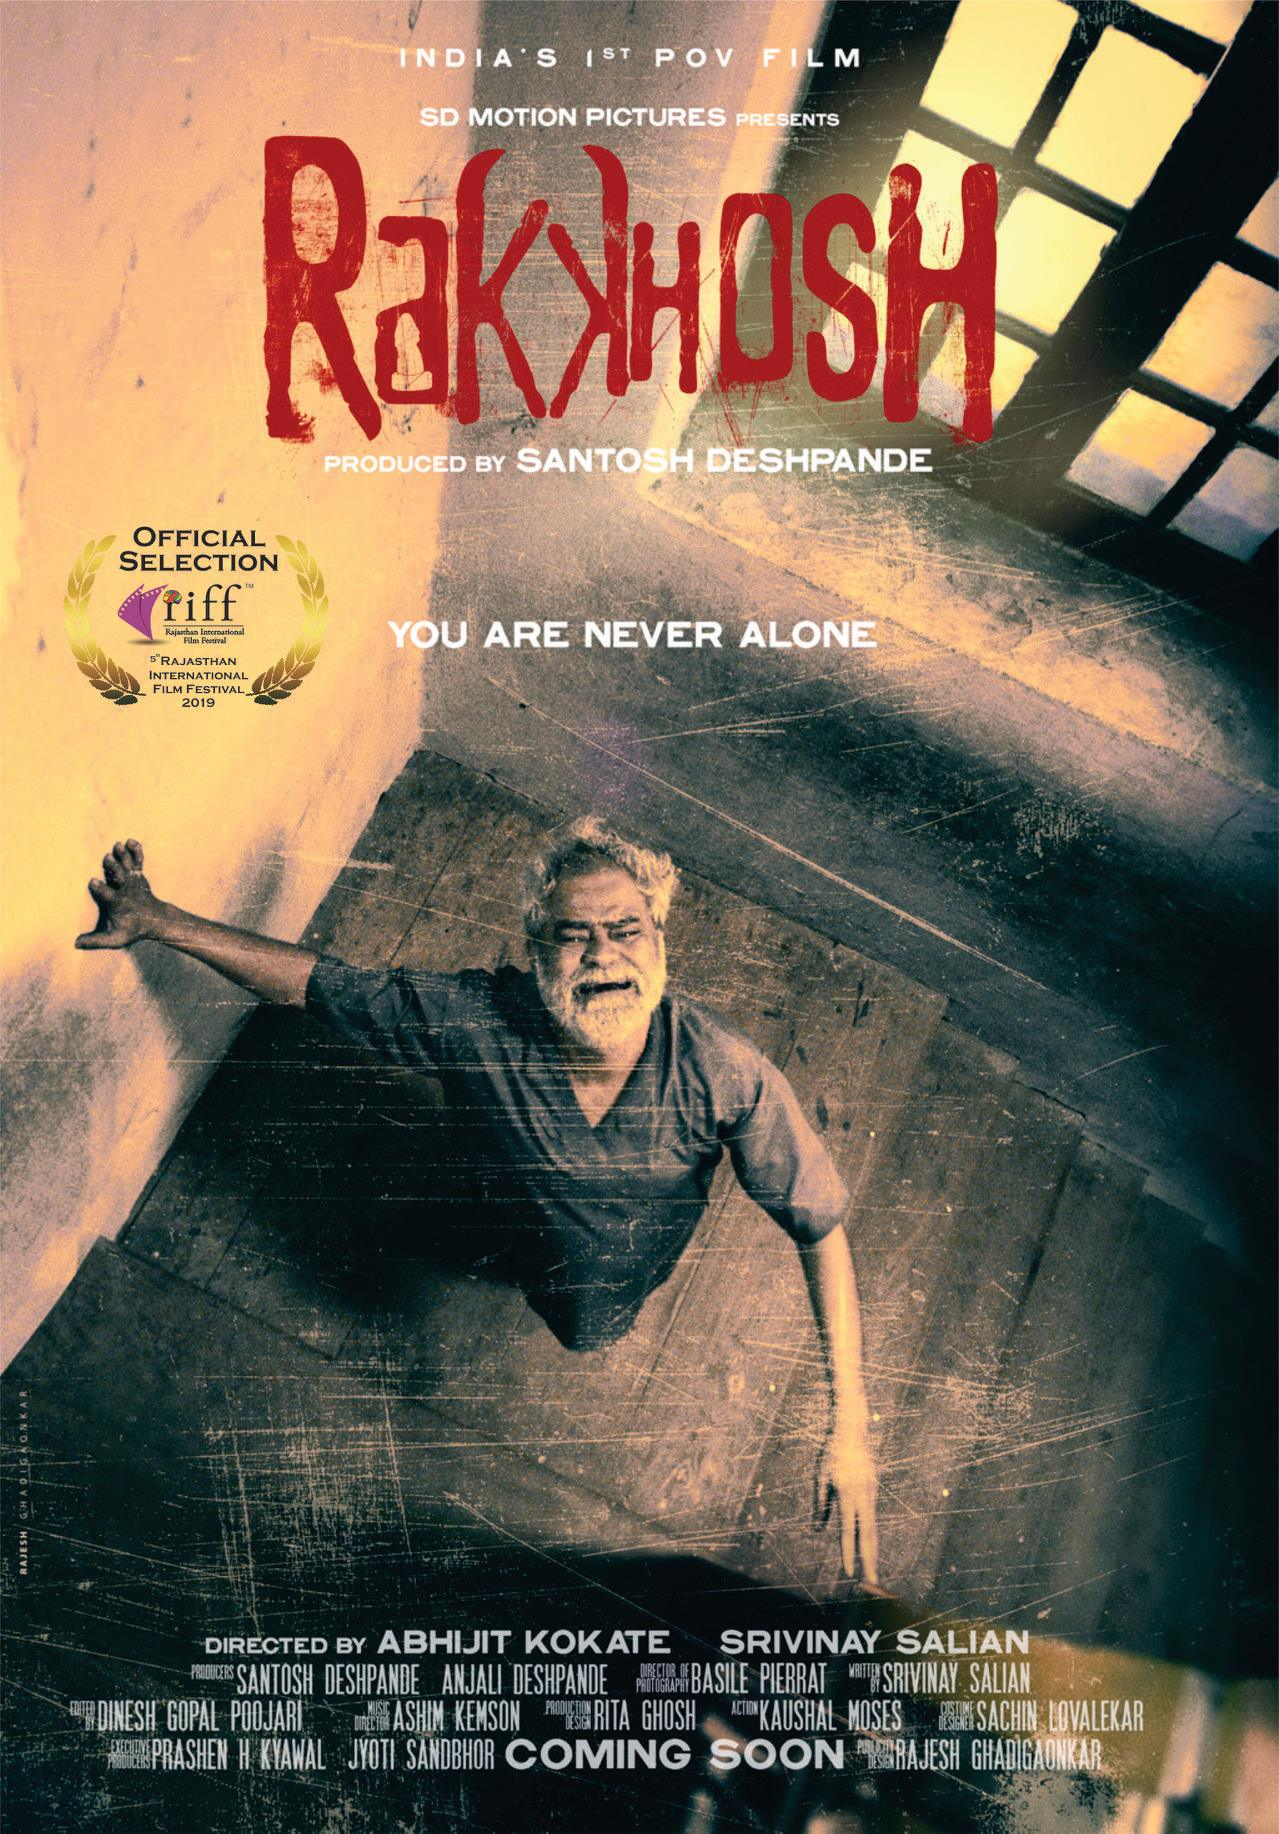 Co-directed by Abhijit Kokate and Srivinay Salian, and available on Netflix, Rakkhosh is not an easy watch, and definitely won't be to all tastes